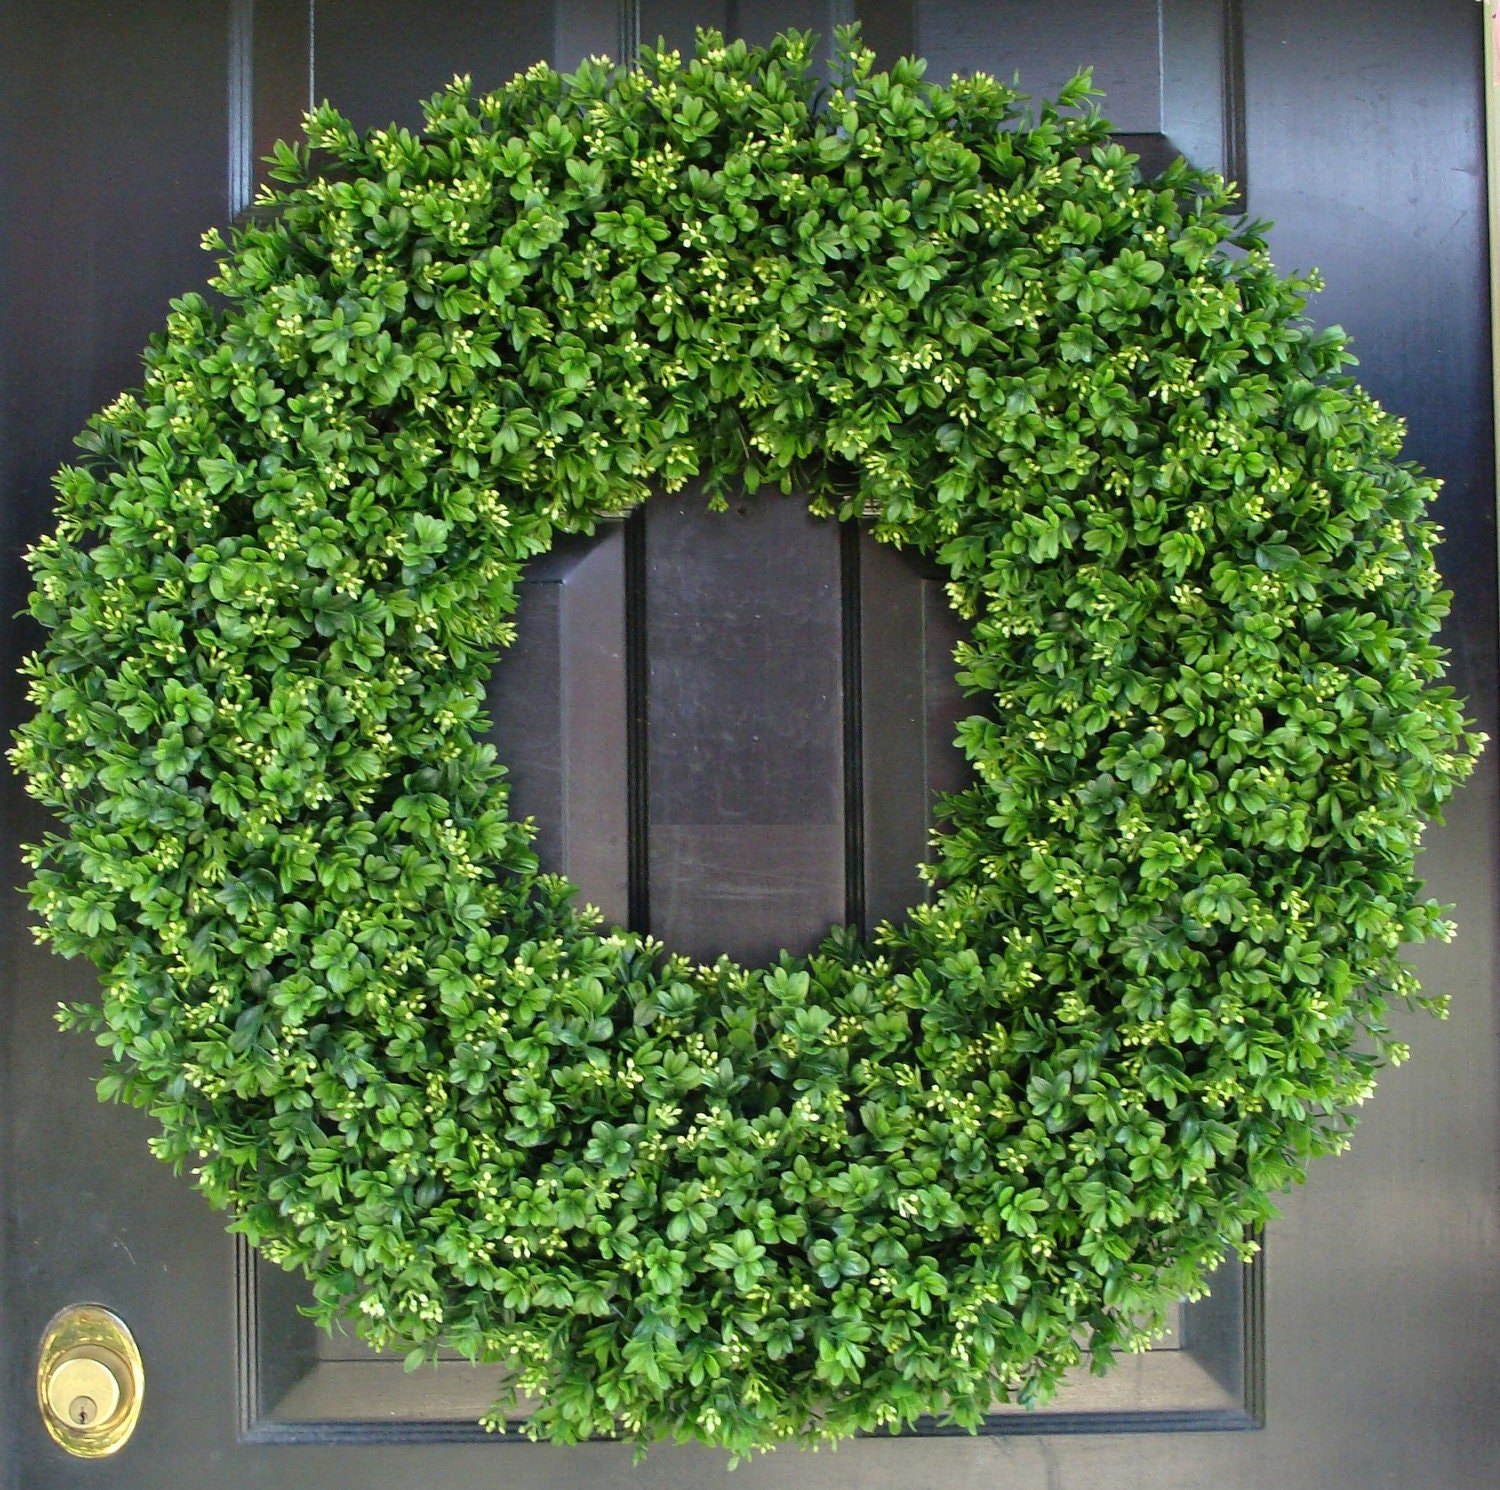 28 Inch Xxl Artificial Boxwood Wreath Oversized Wreath. Brown Subway Tile. Tall Room Dividers. White Washed Wood Dining Table. Polished Concrete Floors Cost. Resource Furniture Prices. Tobi Fairley. Sleep Number Headboard. Window Pane Mirror